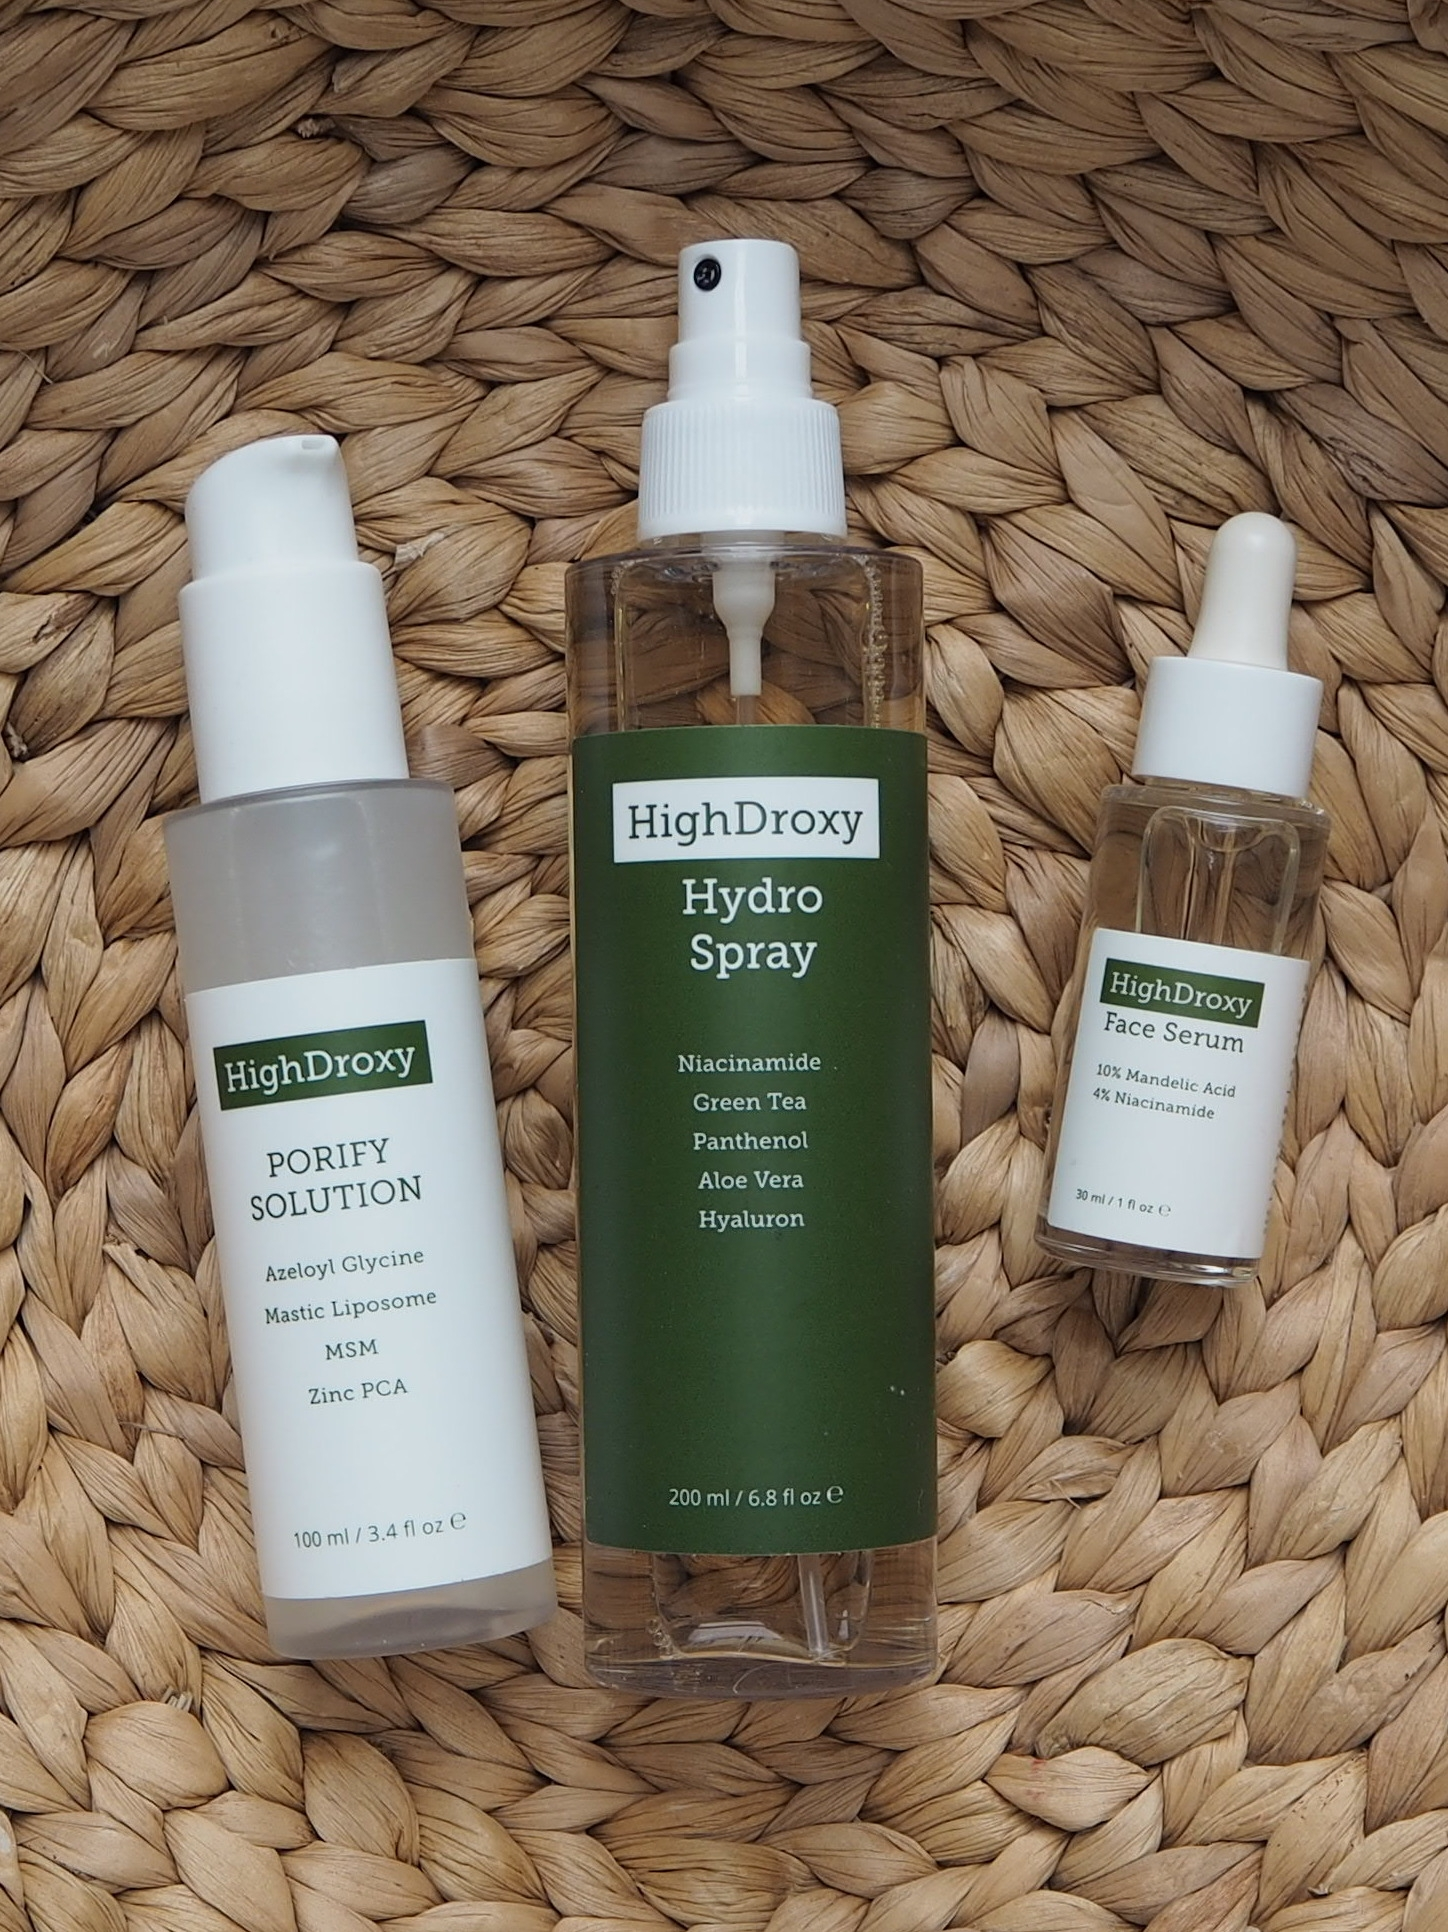 HighDroxy Porify Solution Hydro Spray Face Serum